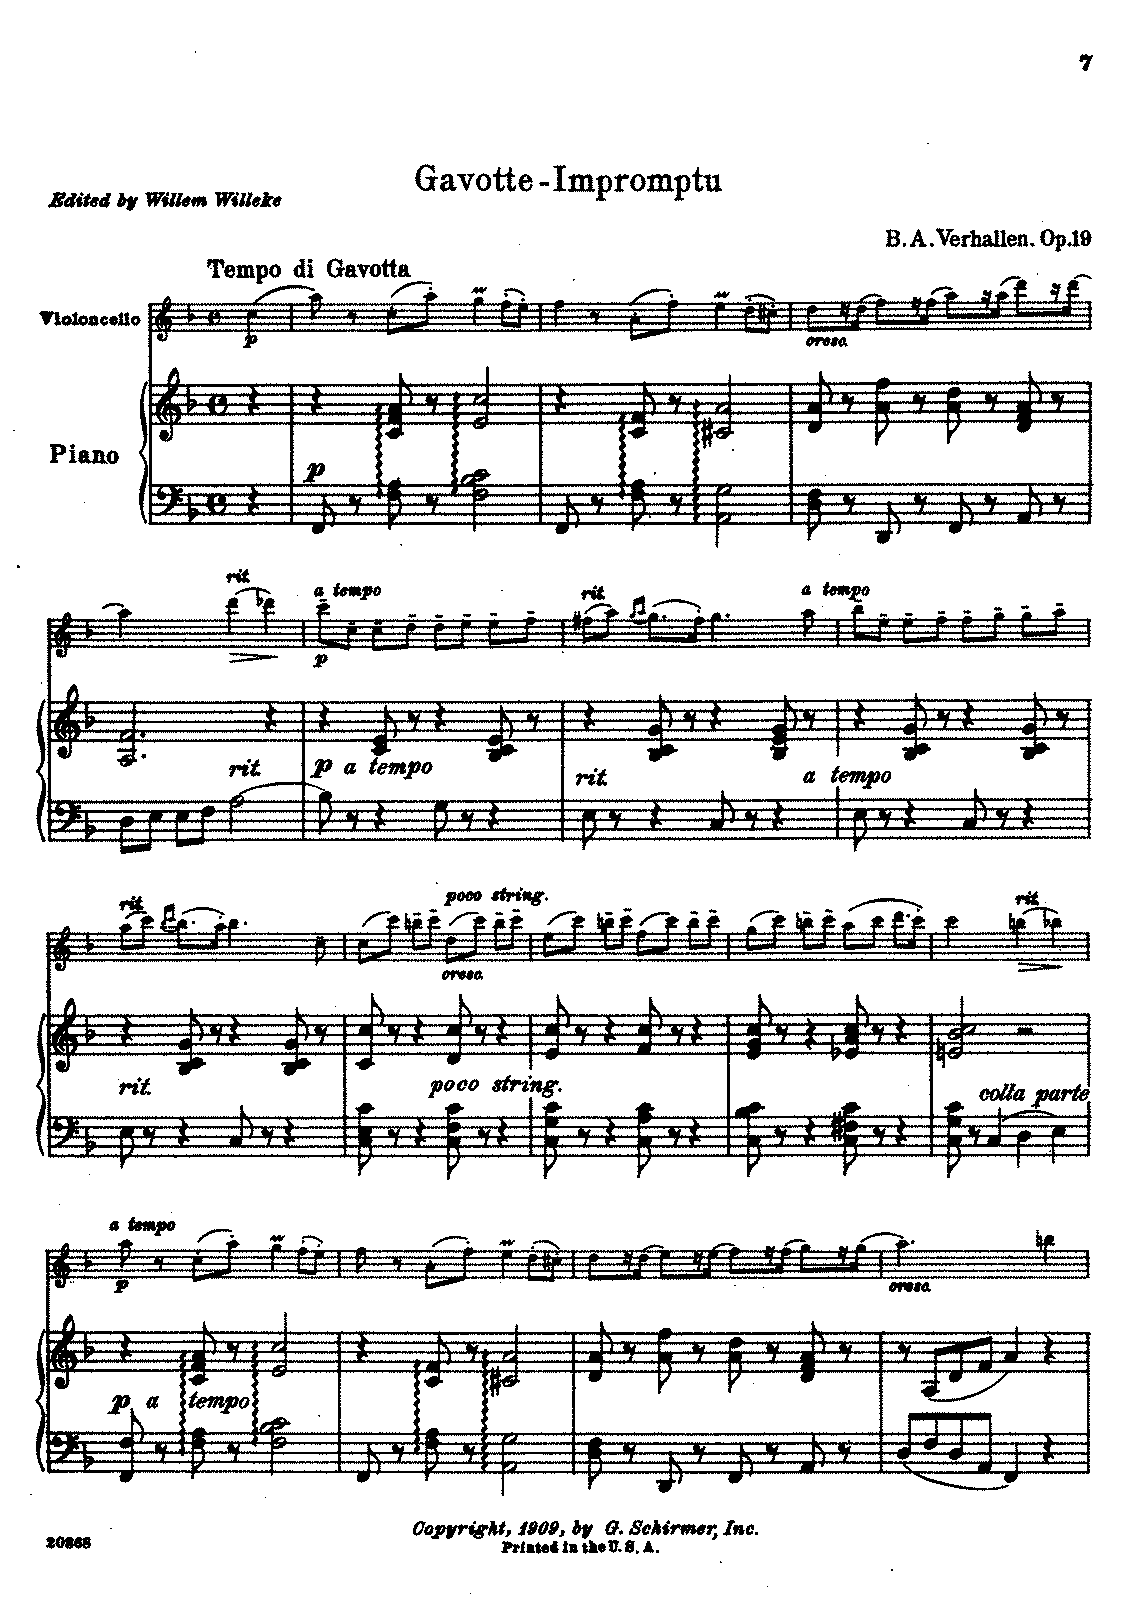 PMLP236829-Verhallen - Gavotte Impromptu Op19 (Willeke) for cello and piano.pdf